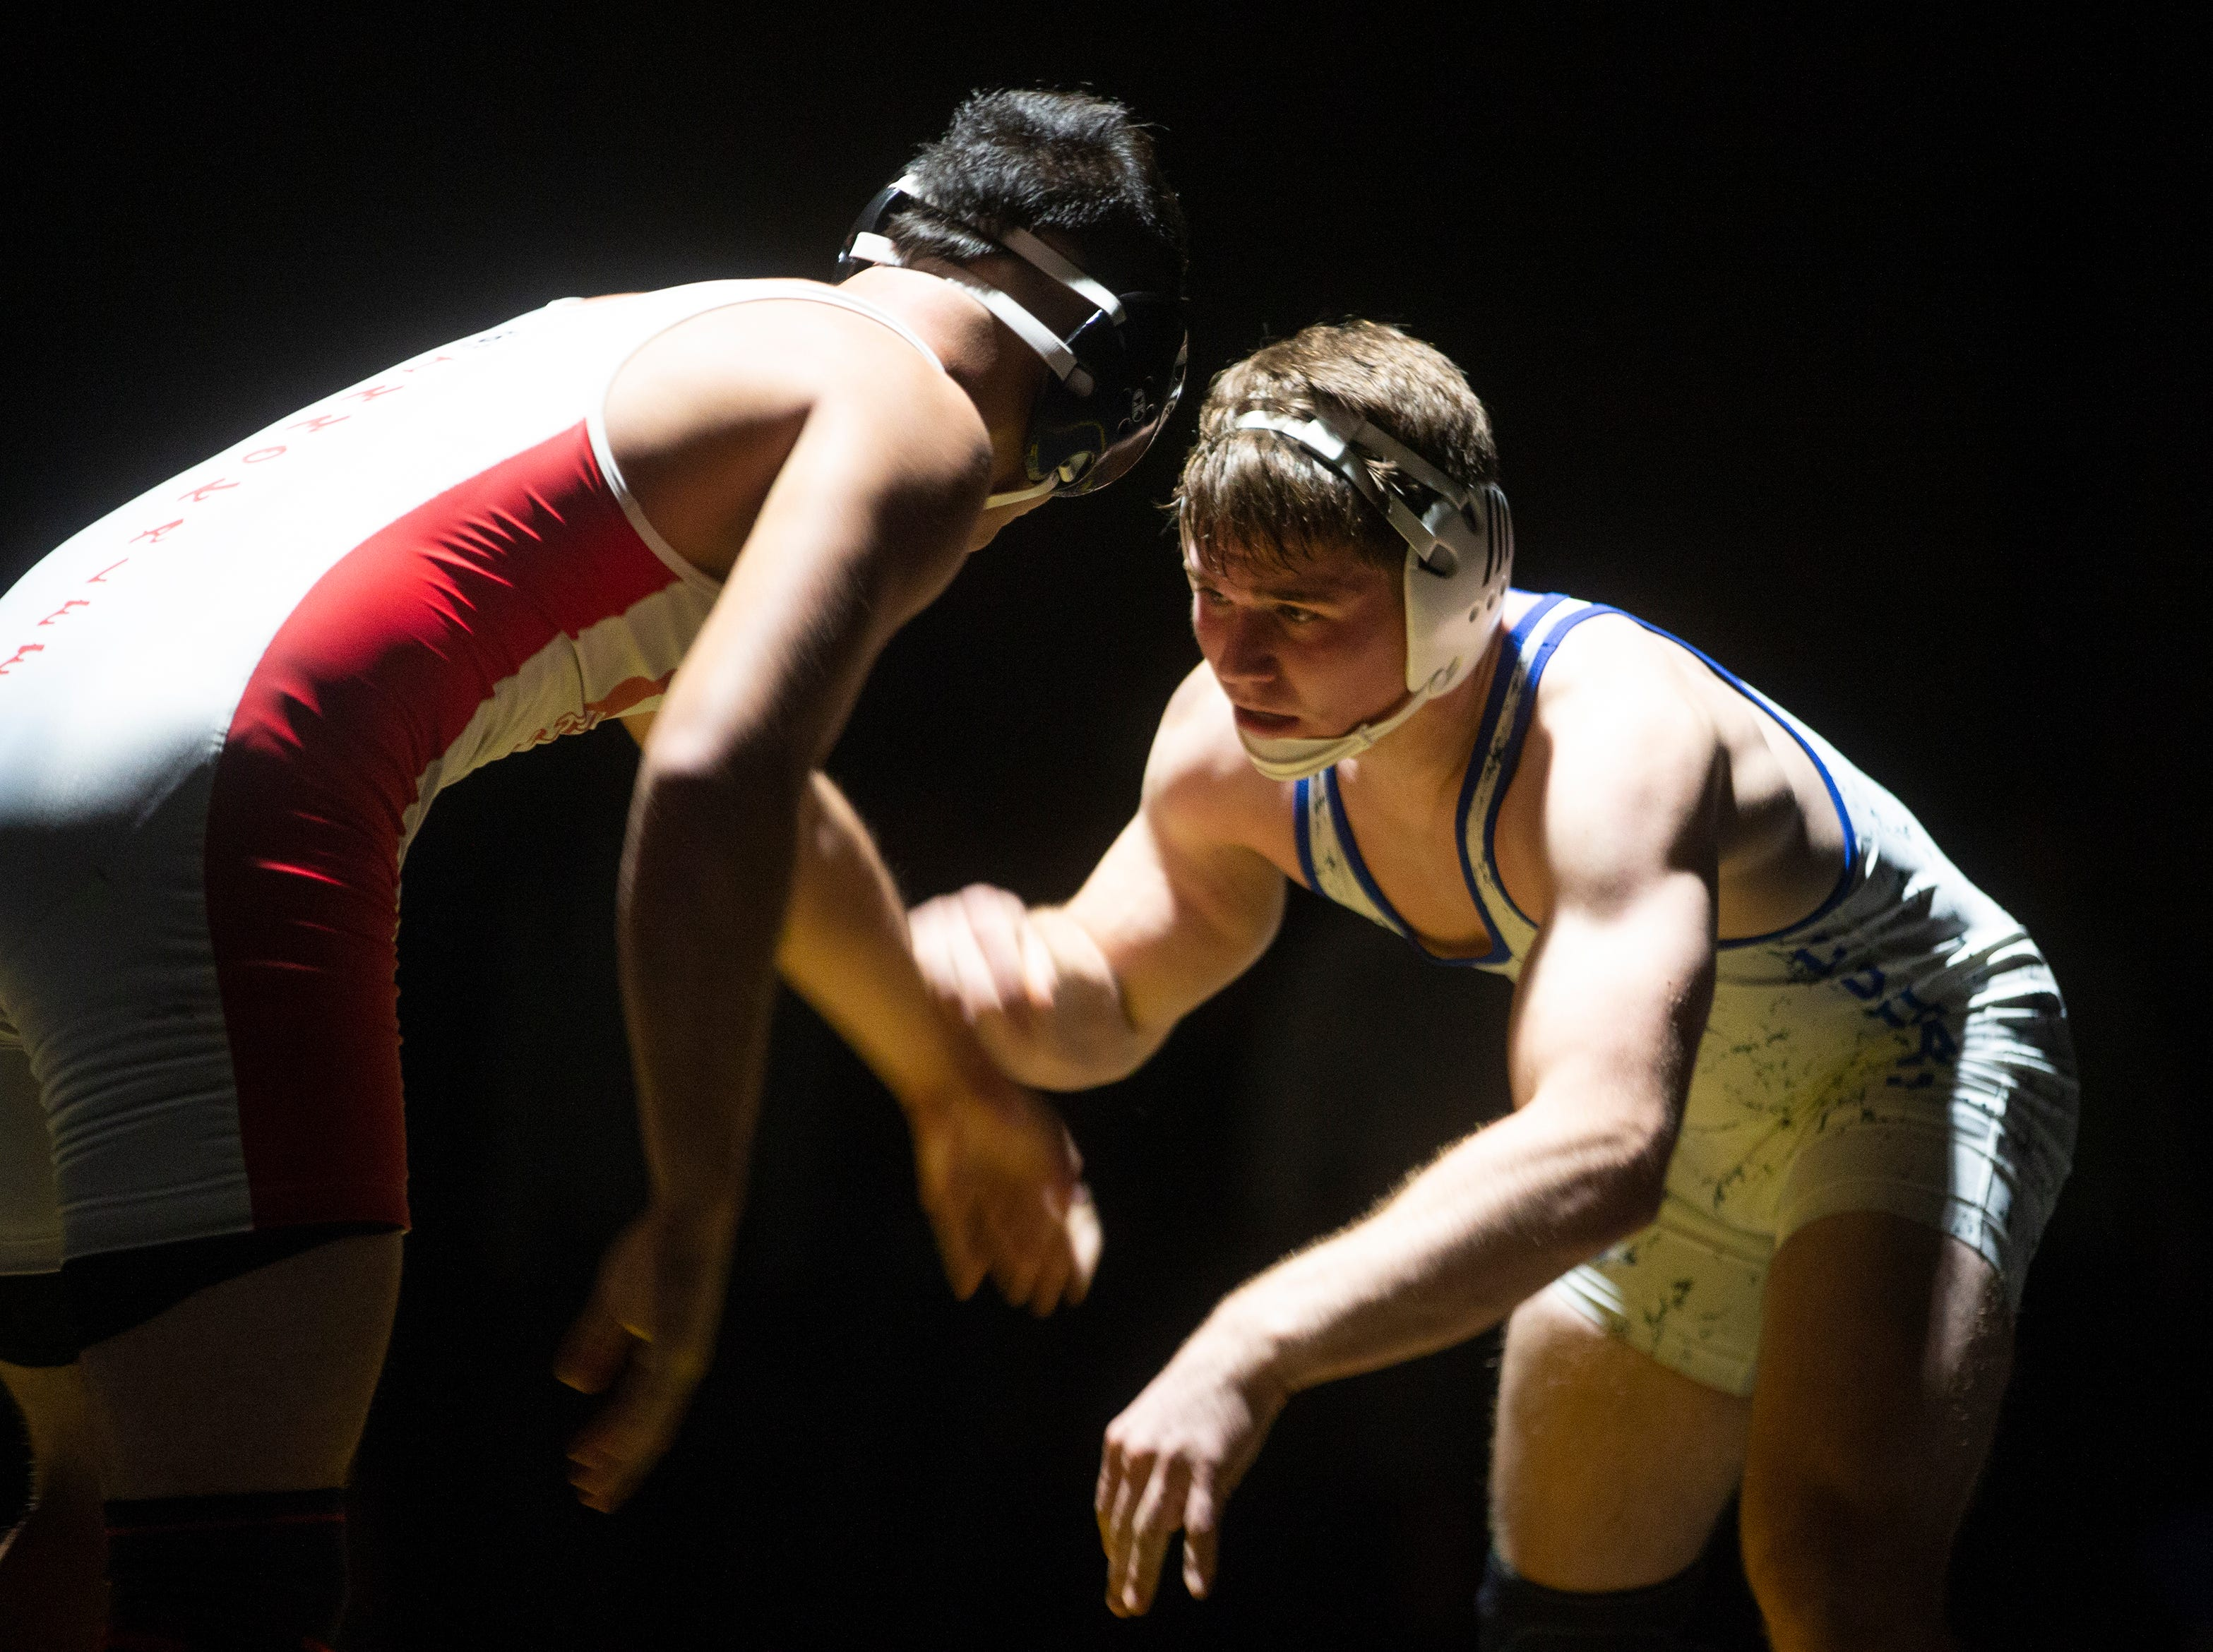 Barron G. Collier High School's Carson Benitez takes on Immokalee High School's Nicolas Turrubiartez in the 160-pound match up during the Collier County Athletic Conference wrestling championship, Wednesday, Jan. 9, 2018, at Naples High School.